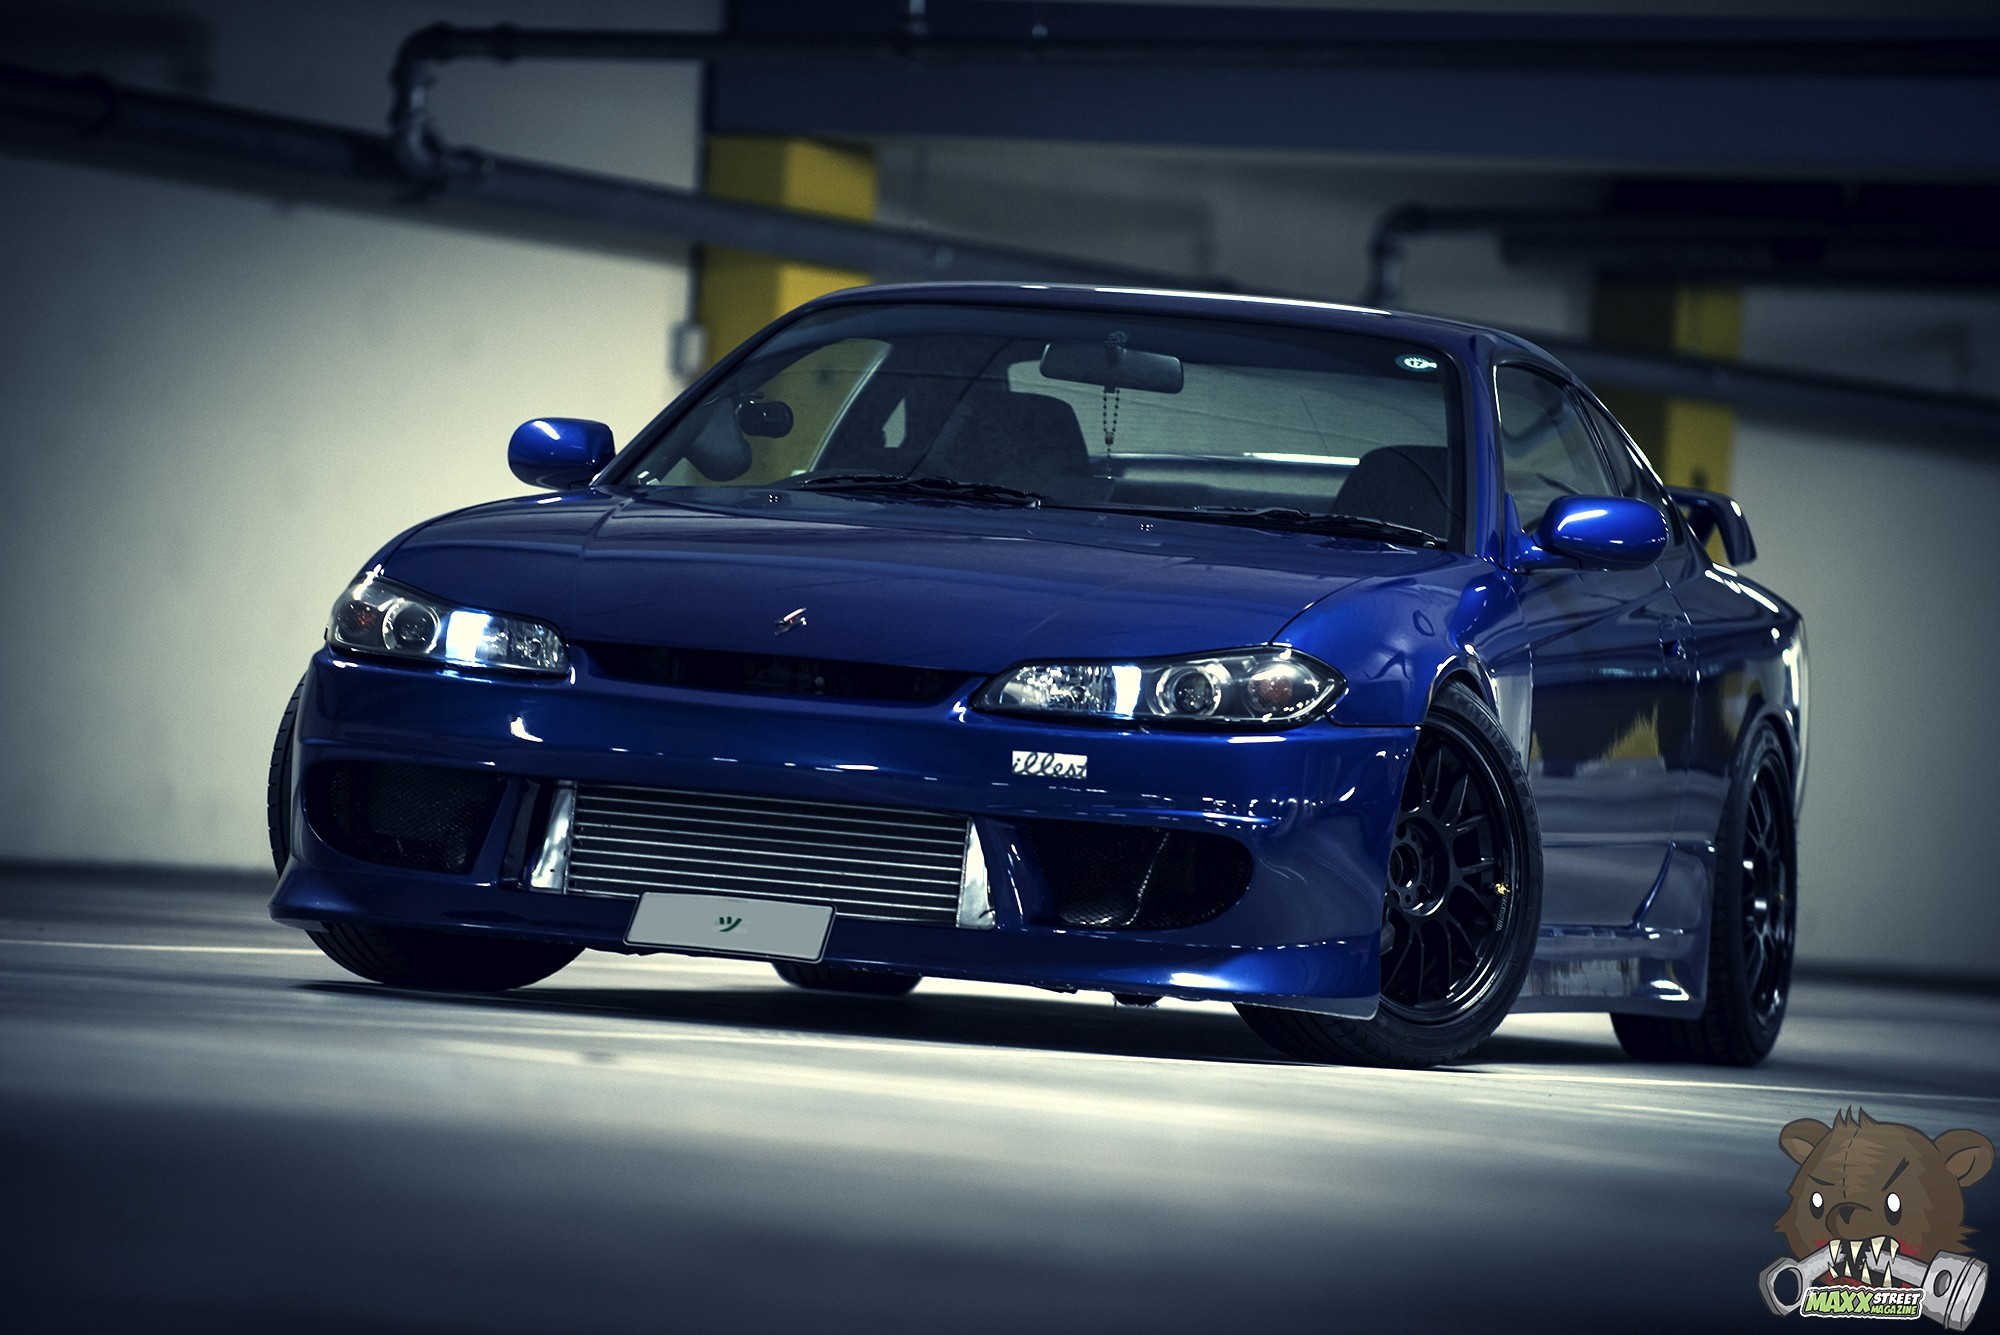 Fast And Furious Hd Wallpapers 1080p Nissan Nissan Silvia Spec R Jdm Japanese Cars Drift